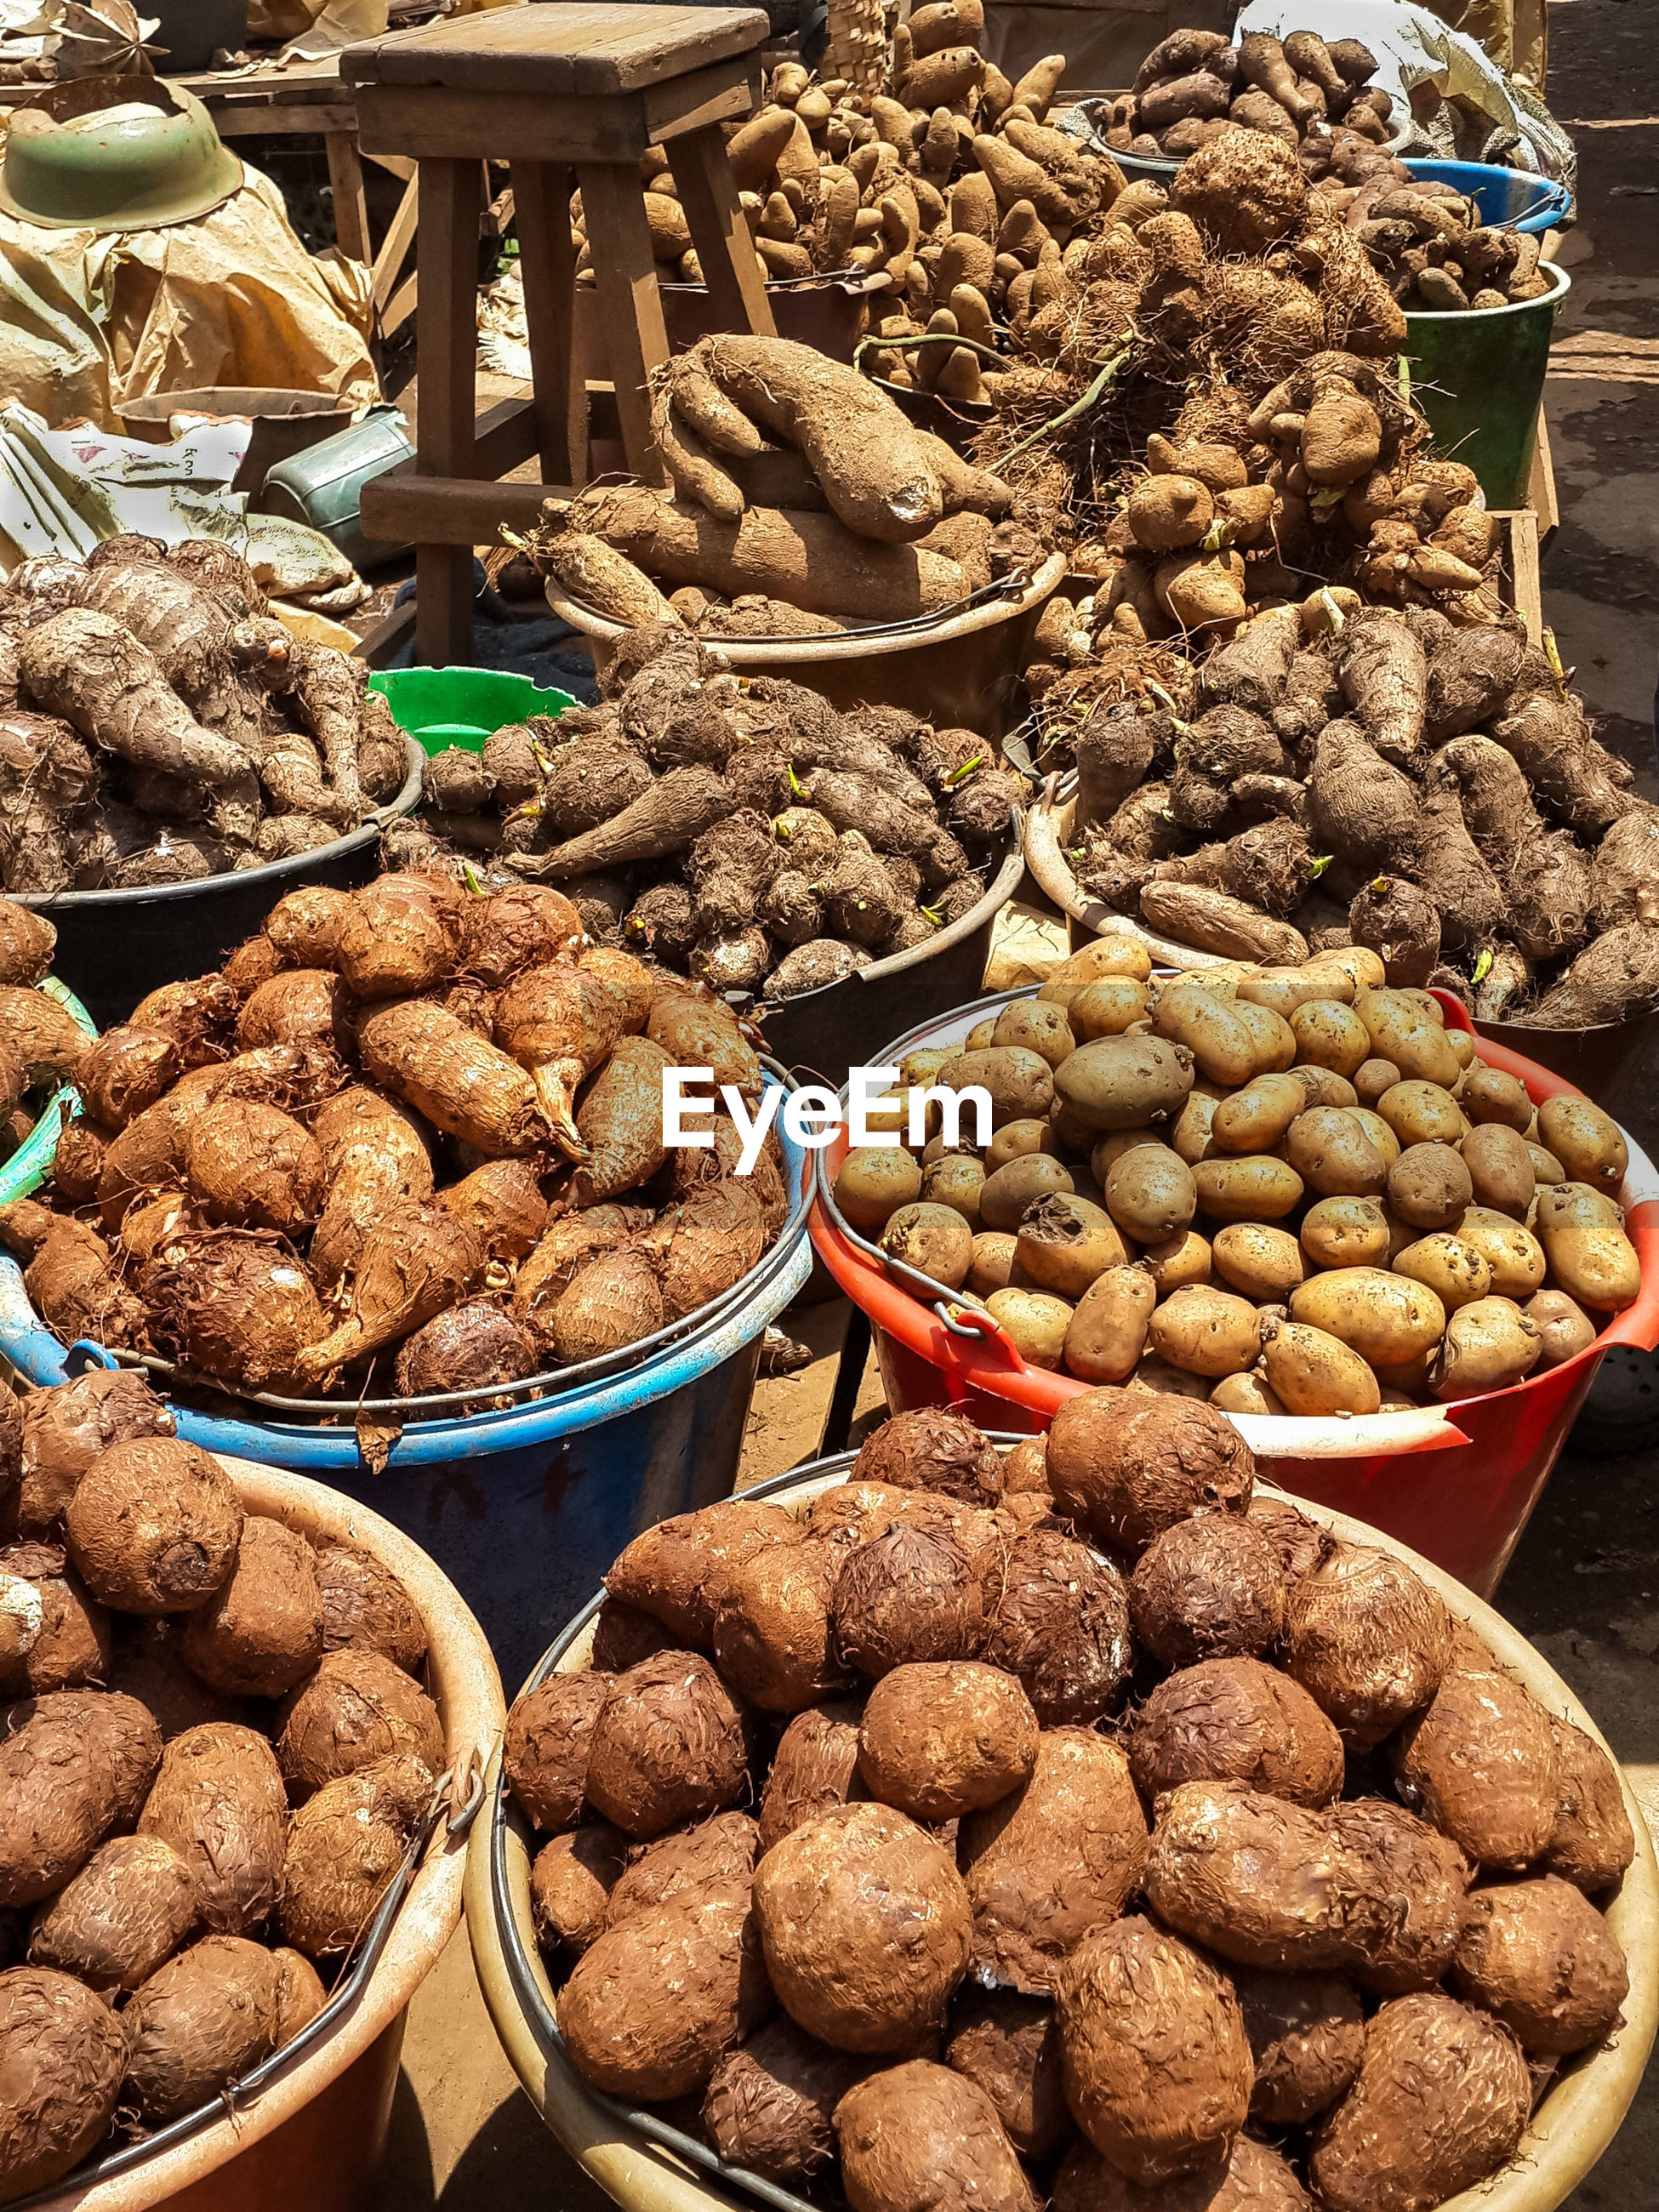 Close-up of potatoes and other root vegetables for sale at market stall, bamenda, cameroon